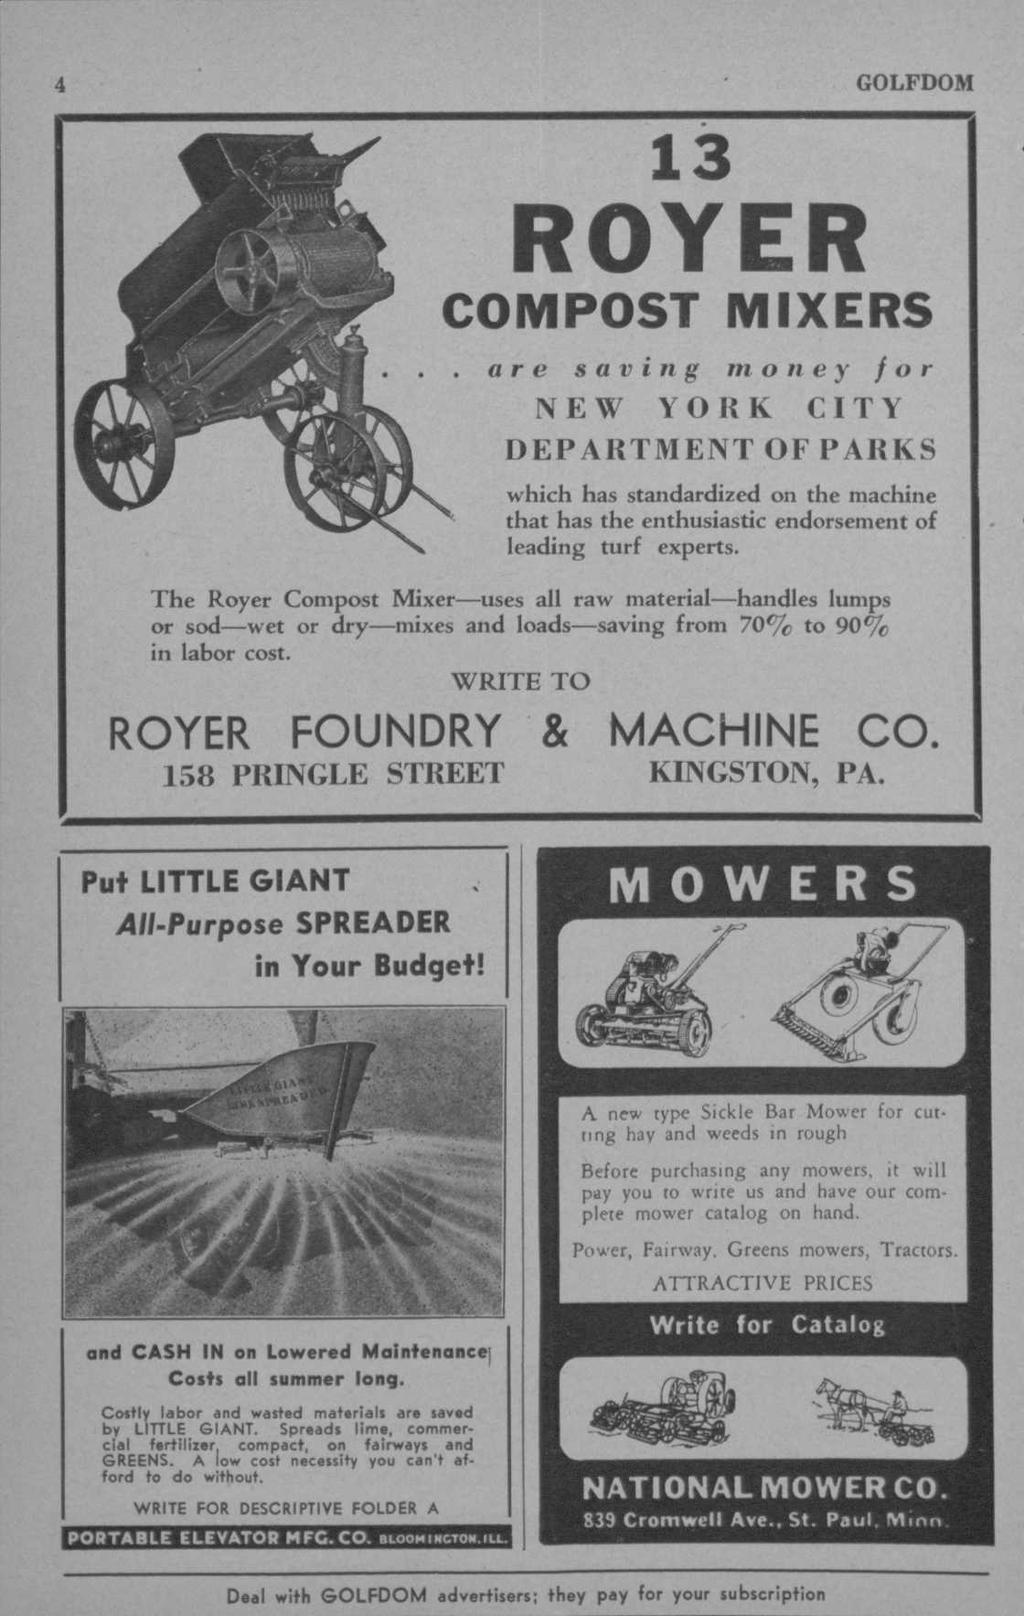 13 ROYER COMPOST MIXERS. a r e s a v i n g m o n e y f o r NEW YORK CITY DEPARTMENT OF PARKS which has standardized on the machine that has the enthusiastic endorsement of leading turf experts.